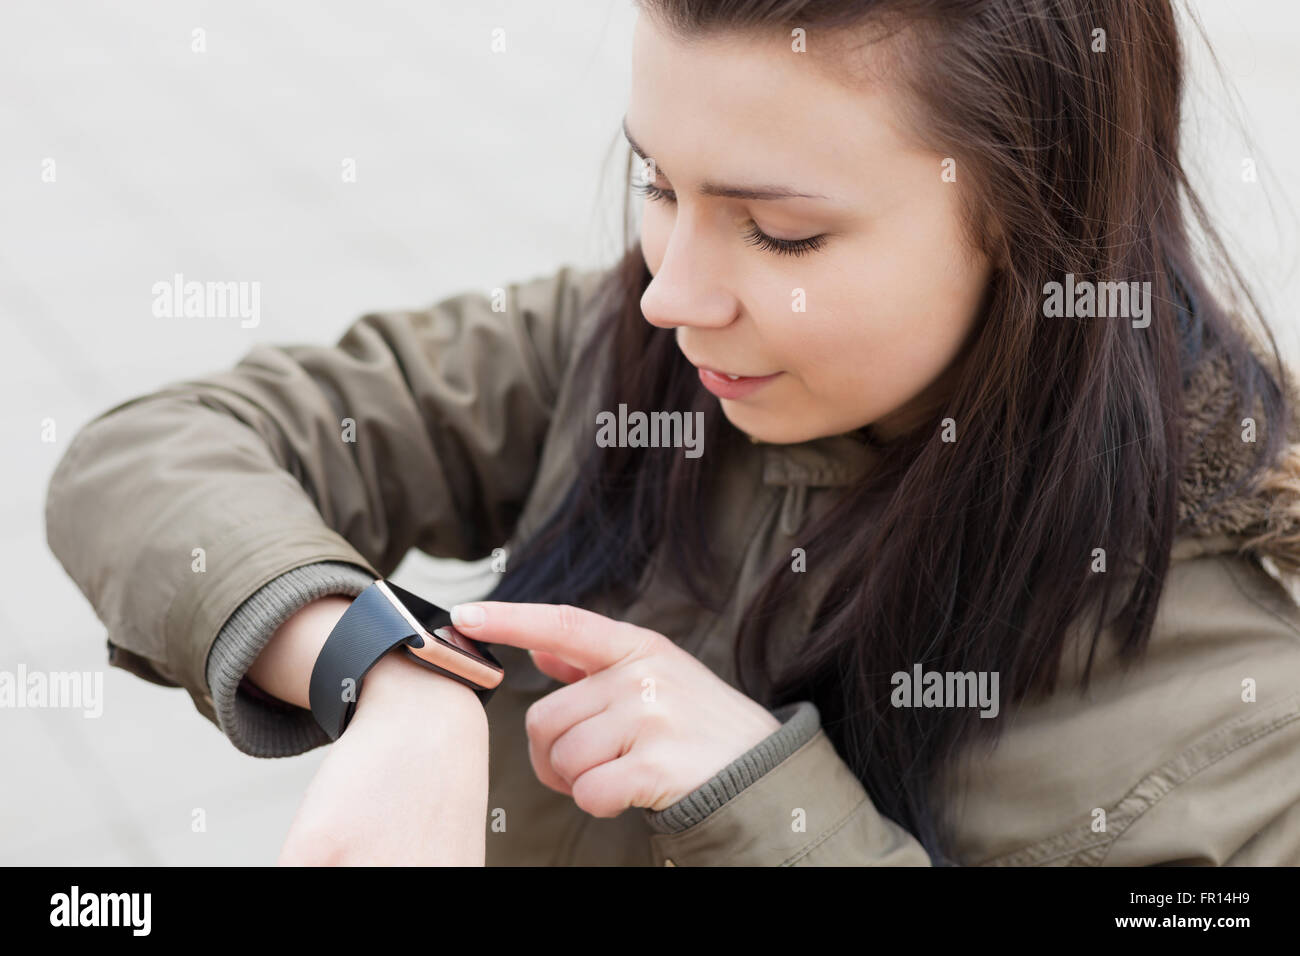 Young girl using her modern smart wrist watch. She is always connected to social media and internet. - Stock Image